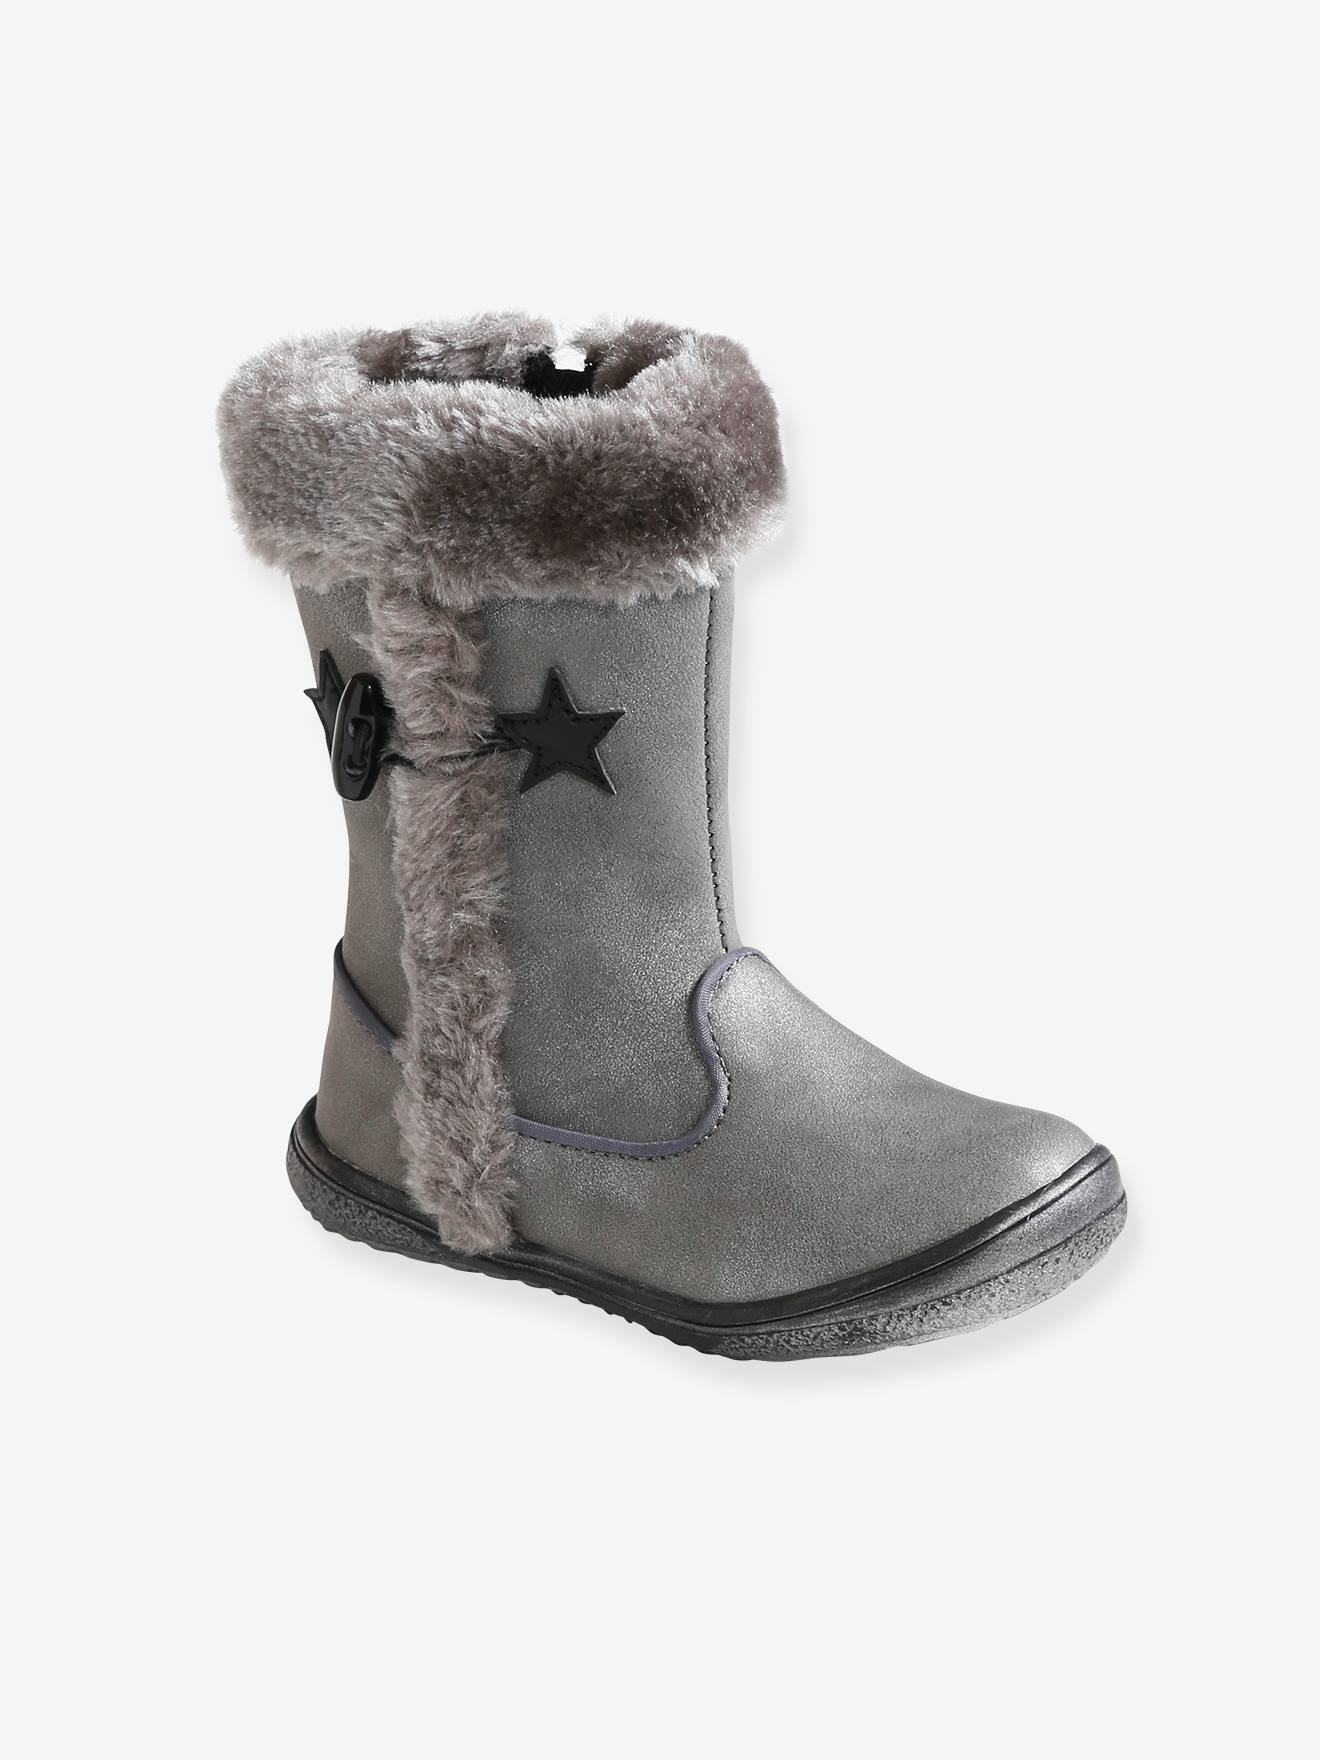 Boots with Faux Fur Details for Girls